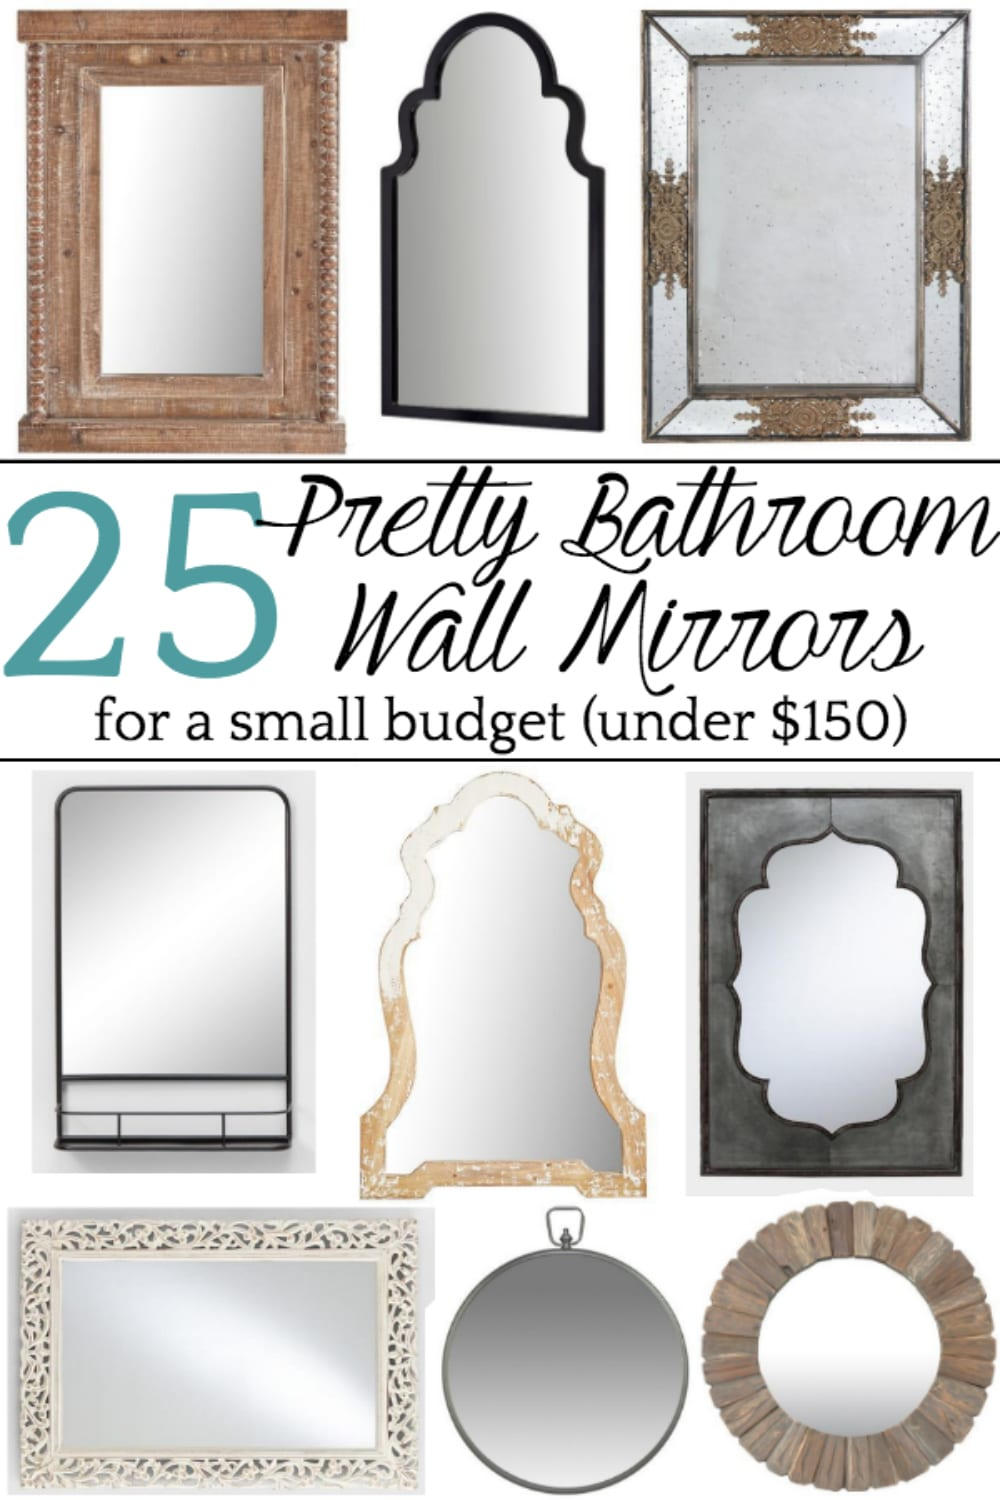 Unique Bathroom Mirrors For A Small Budget Bless Er House